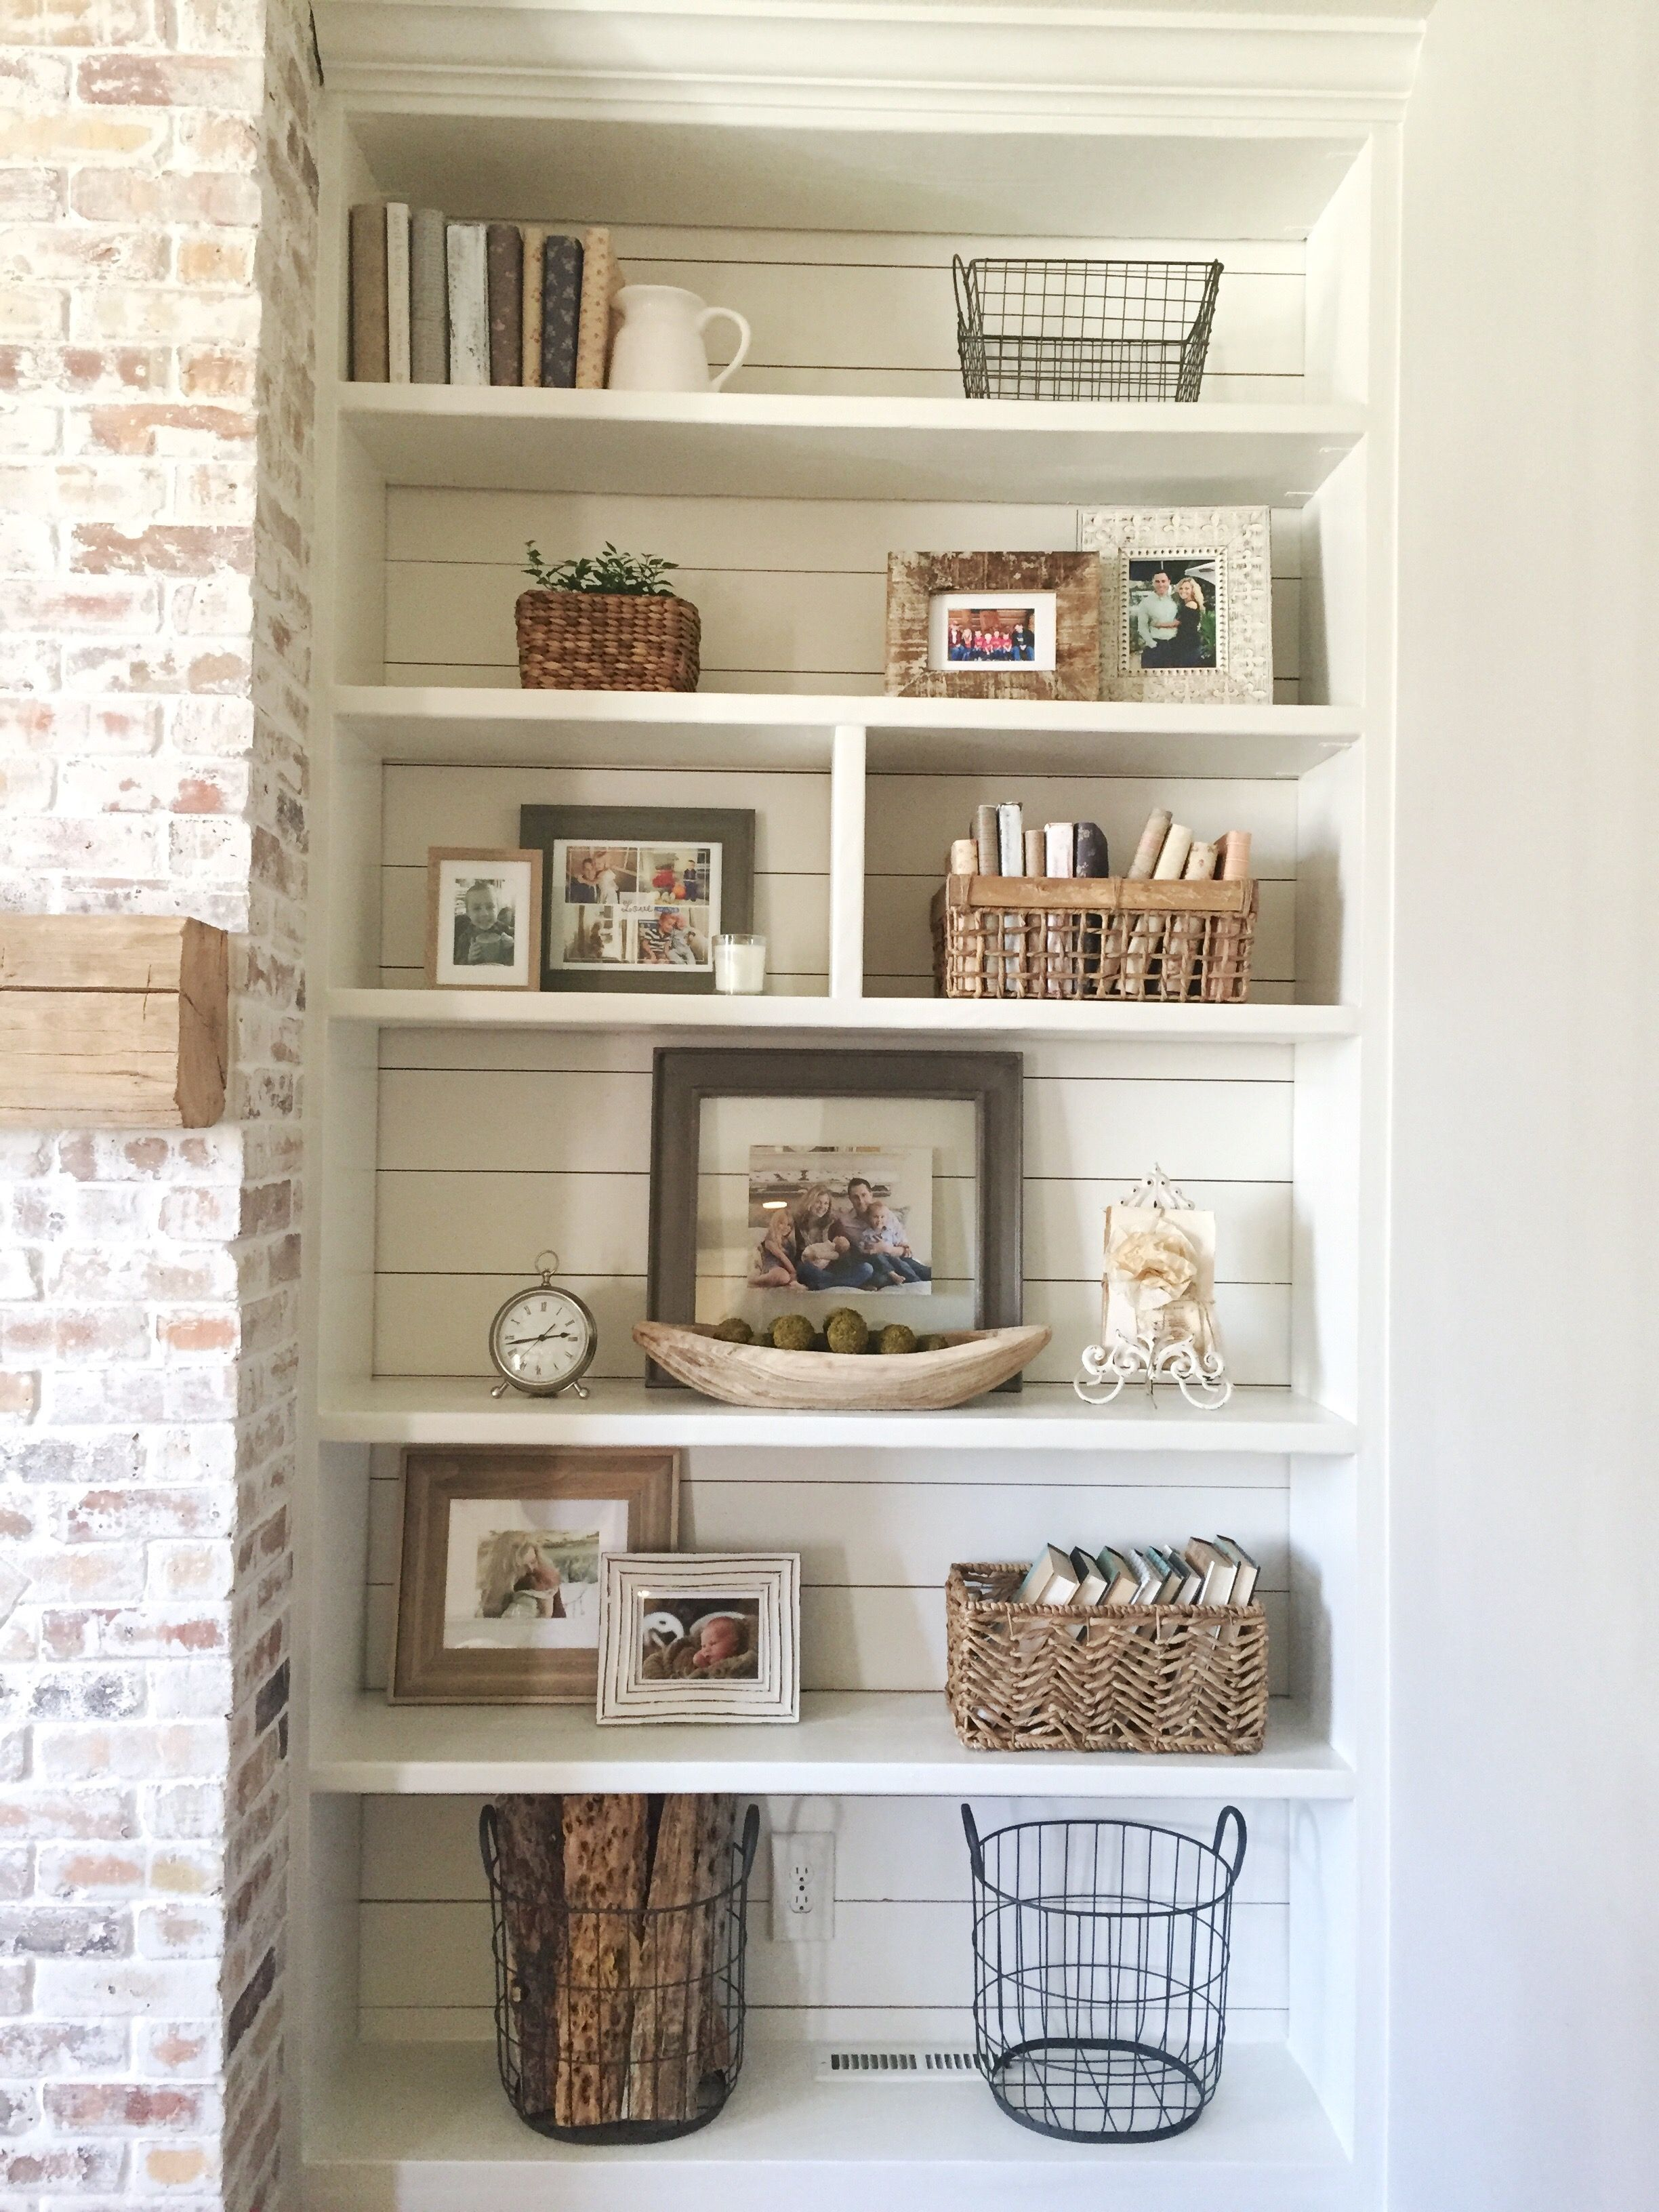 Built In Bookshelves Styling And Decor Shiplap Whitewash B